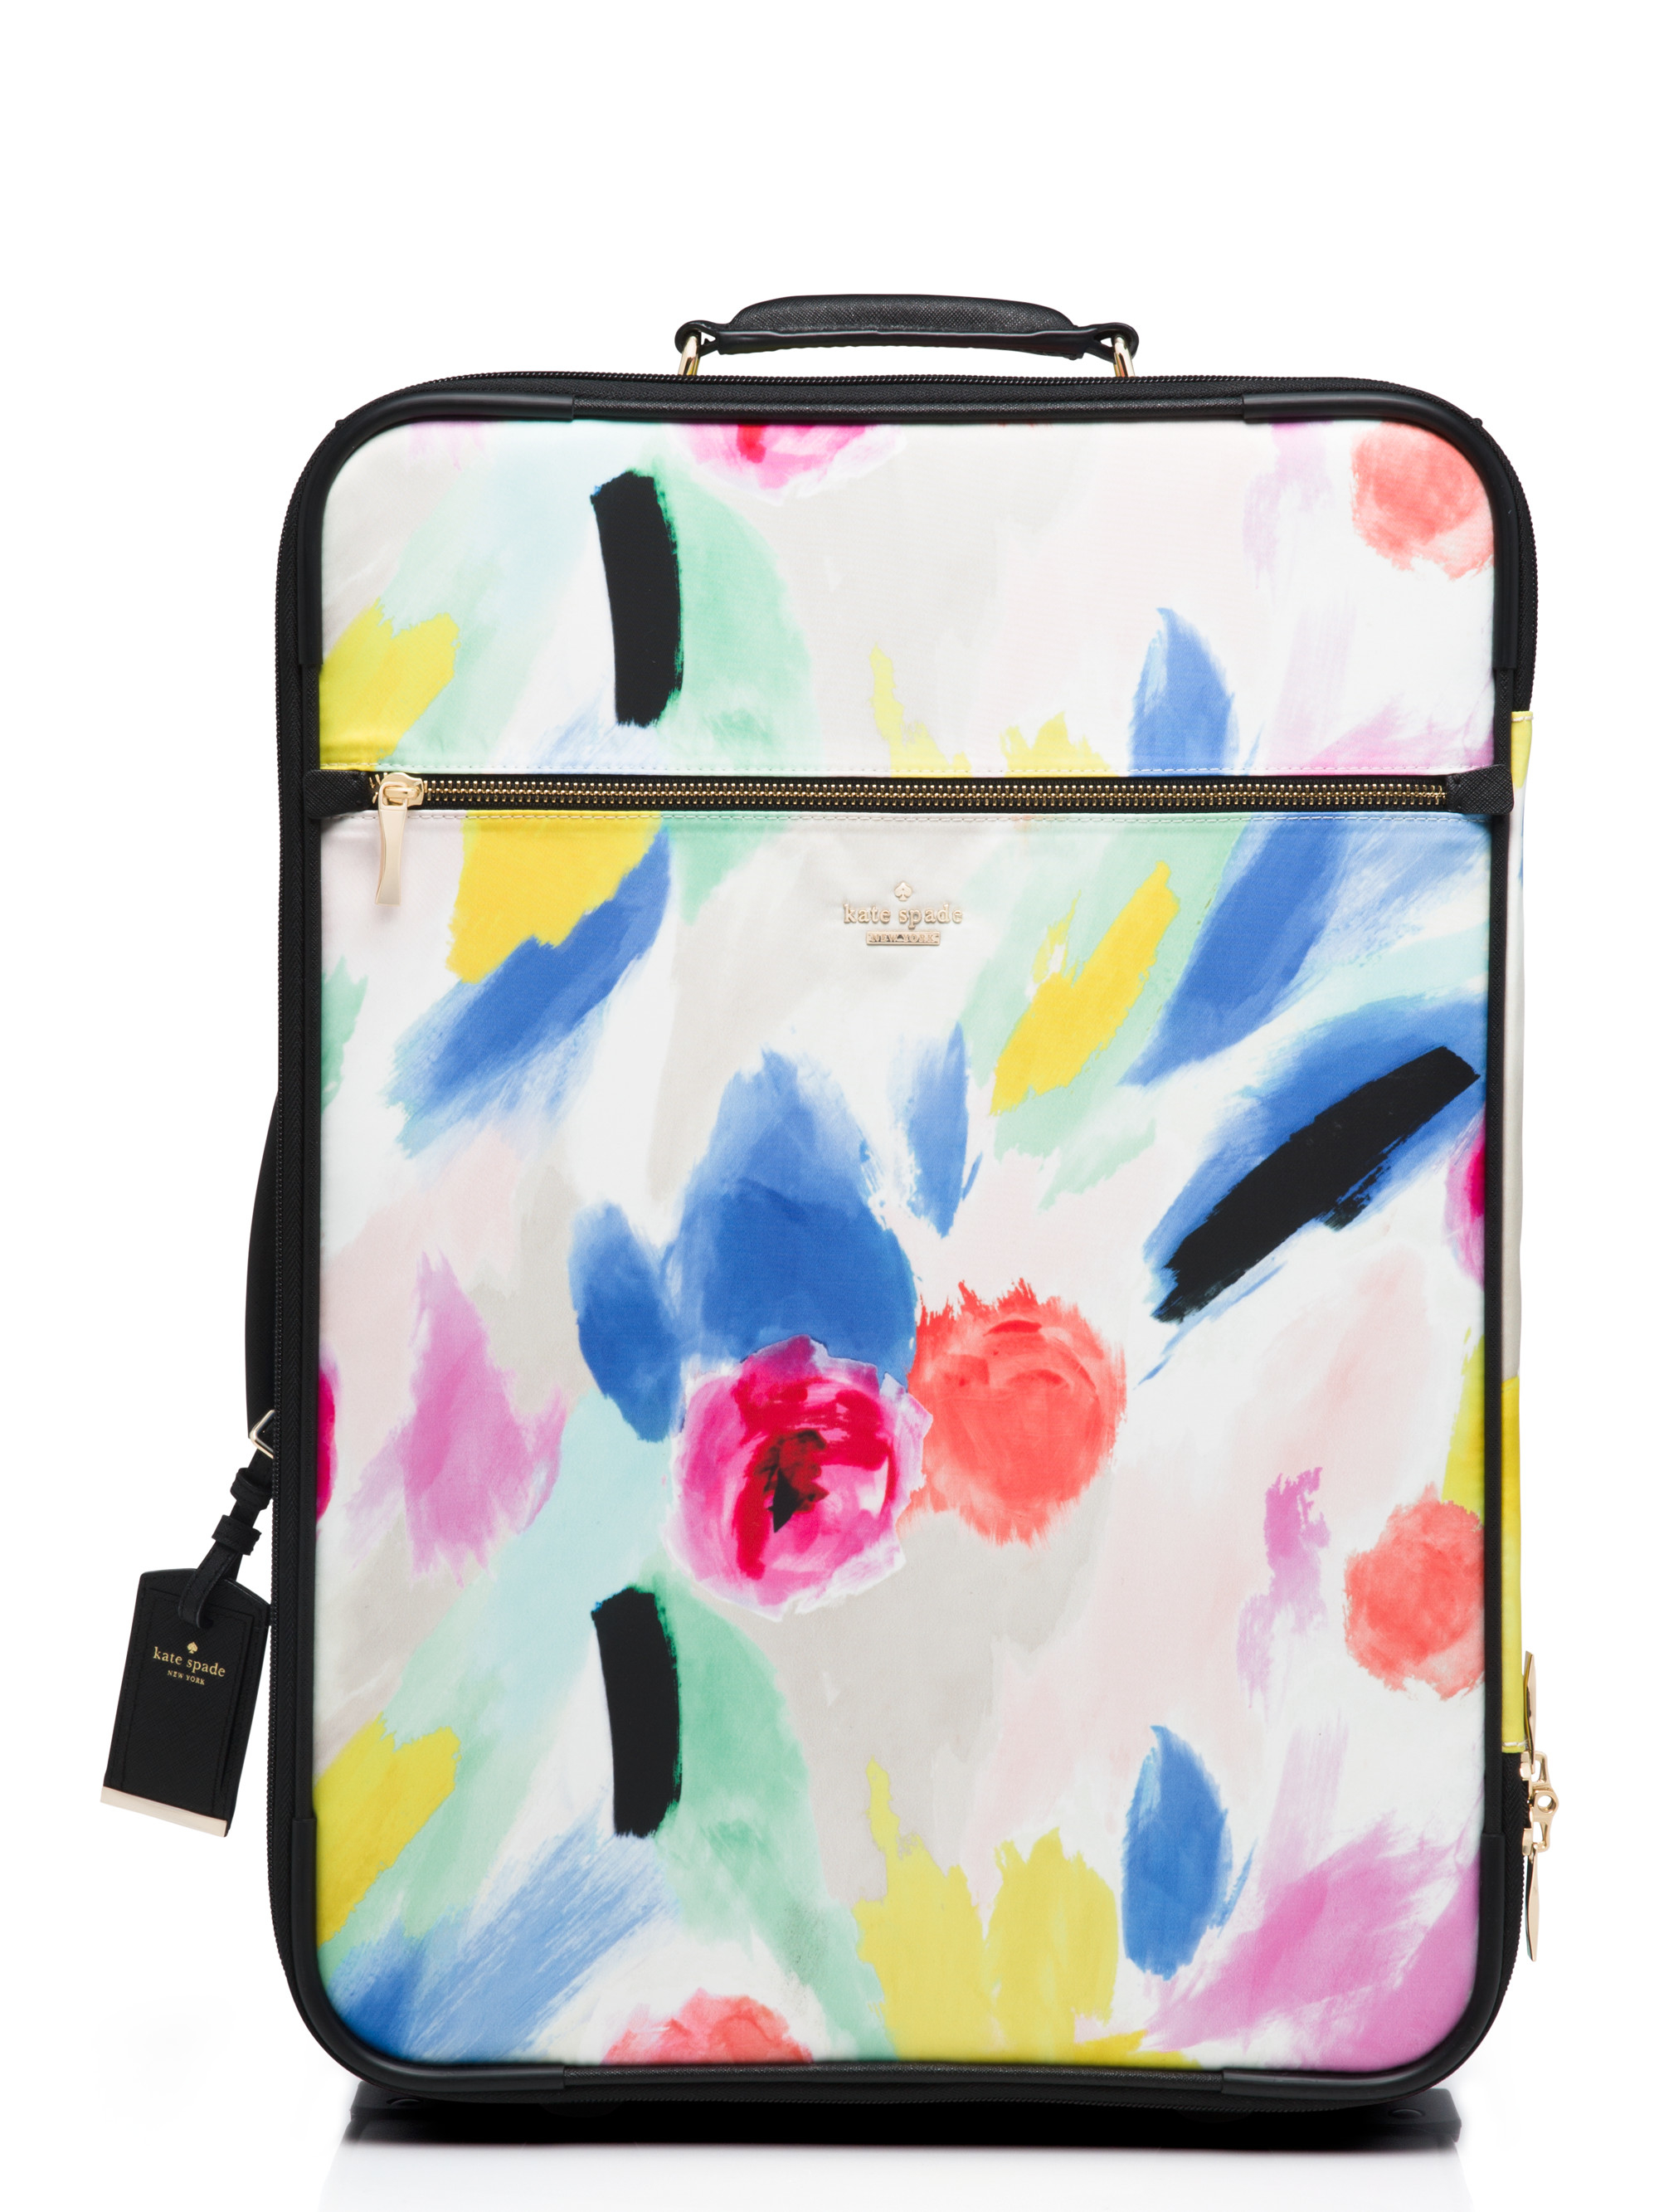 8af91a8c0fca Lyst - Kate Spade Classic Nylon International Carry-on